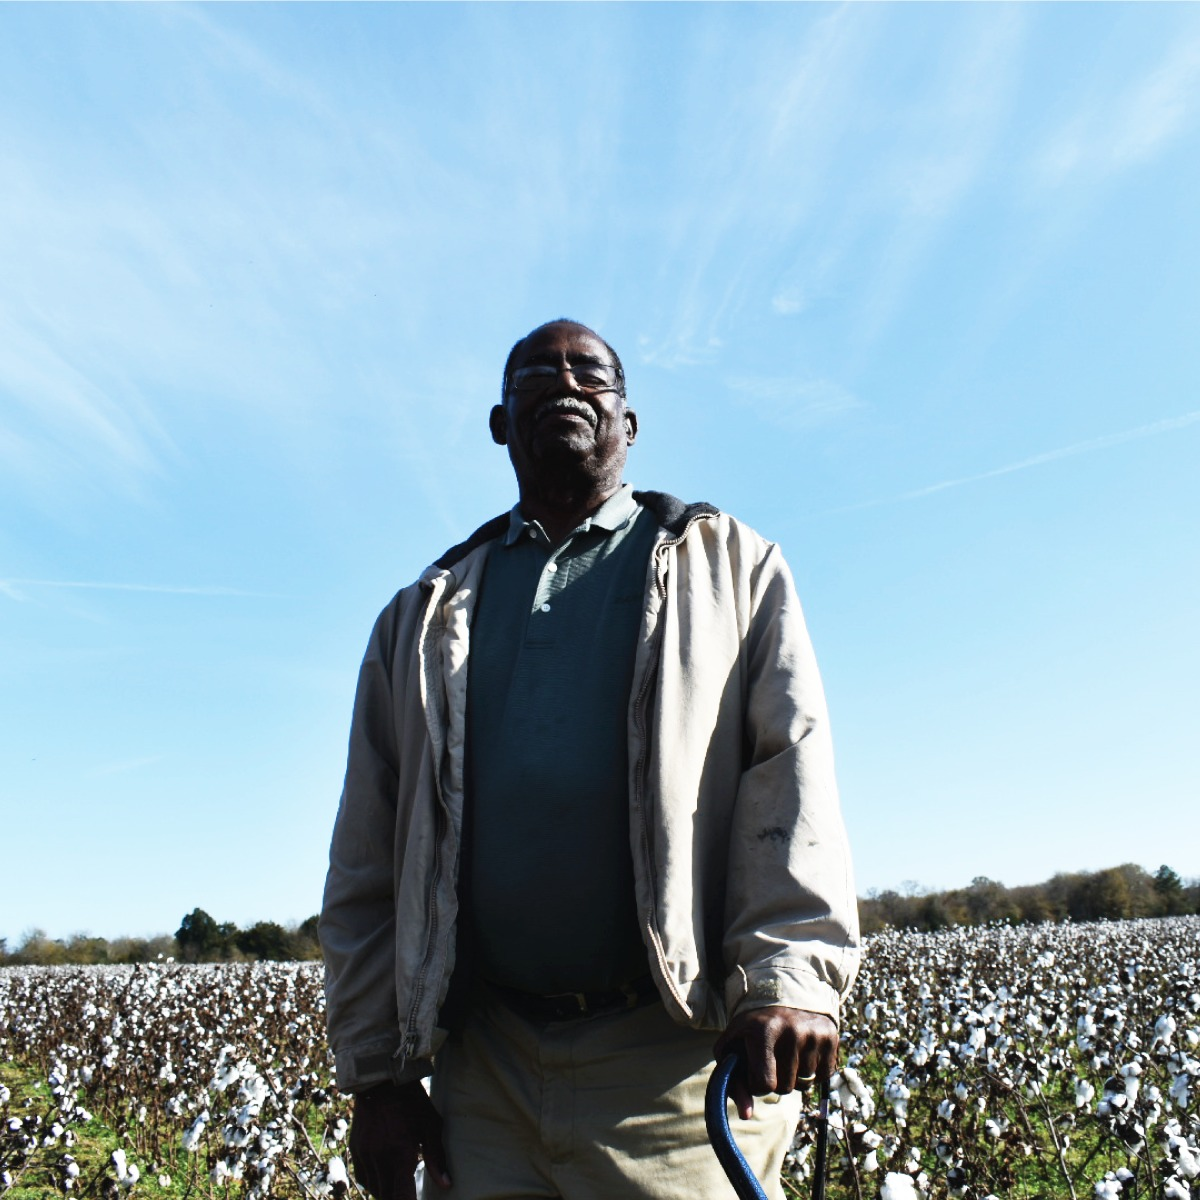 Eddie-Slaughter-Pigford-legacy-farmer-stands-on-his-centennial-farm-in-rural-Georgia, Provide restorative land justice to Black legacy farmers, National News & Views